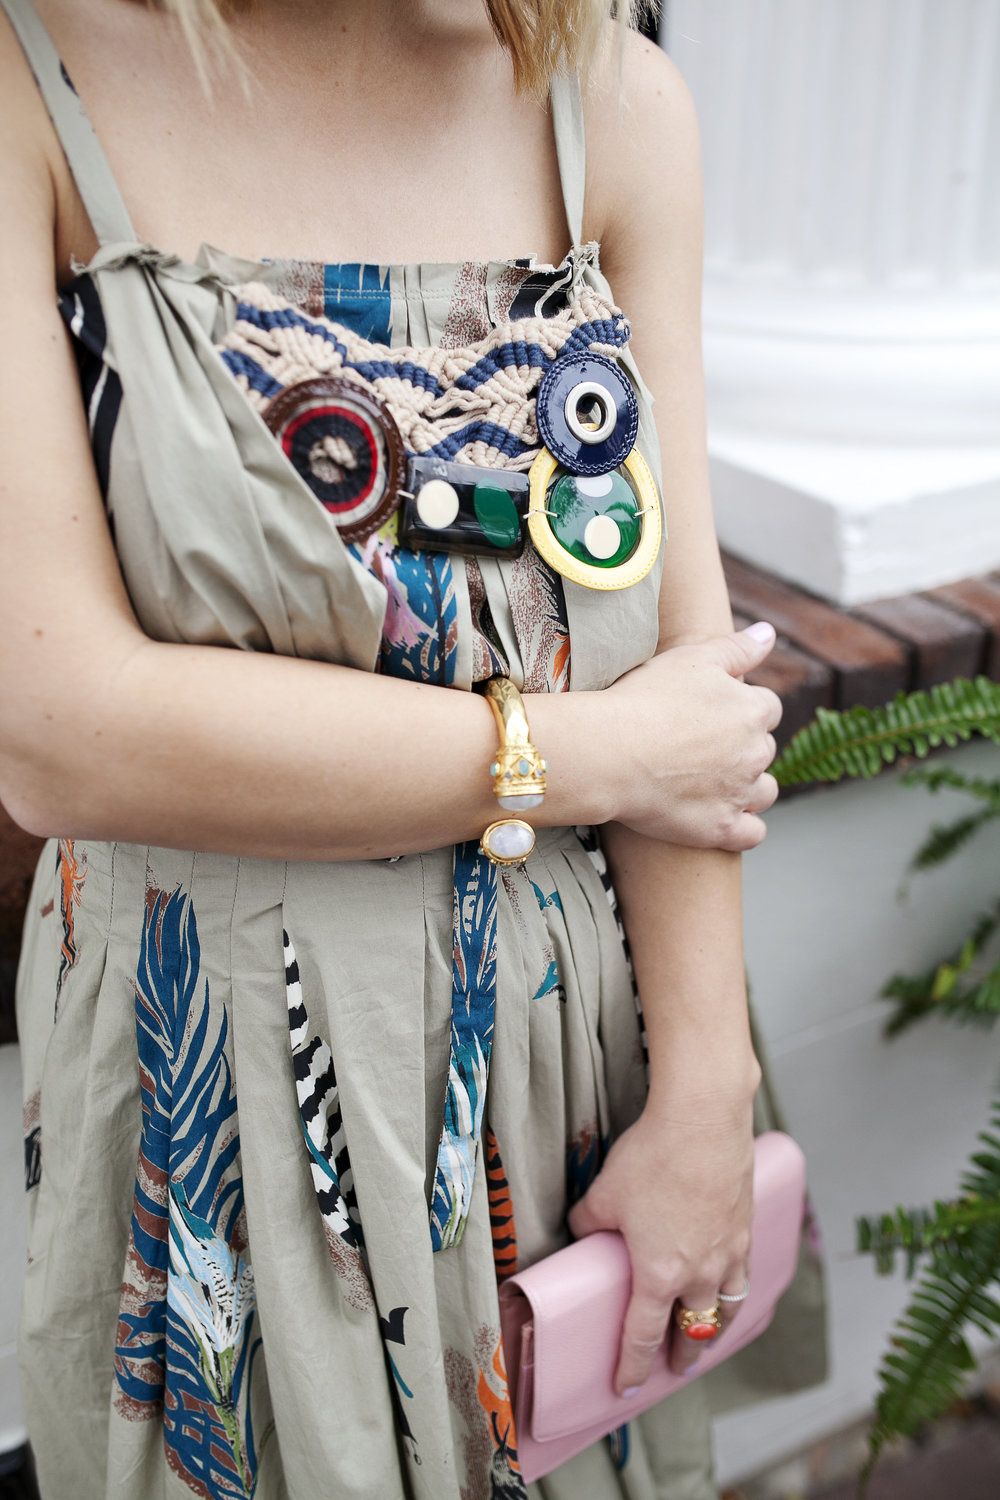 Marni dress with feathers, pink chanel bag and red strappy shoes 1.jpg